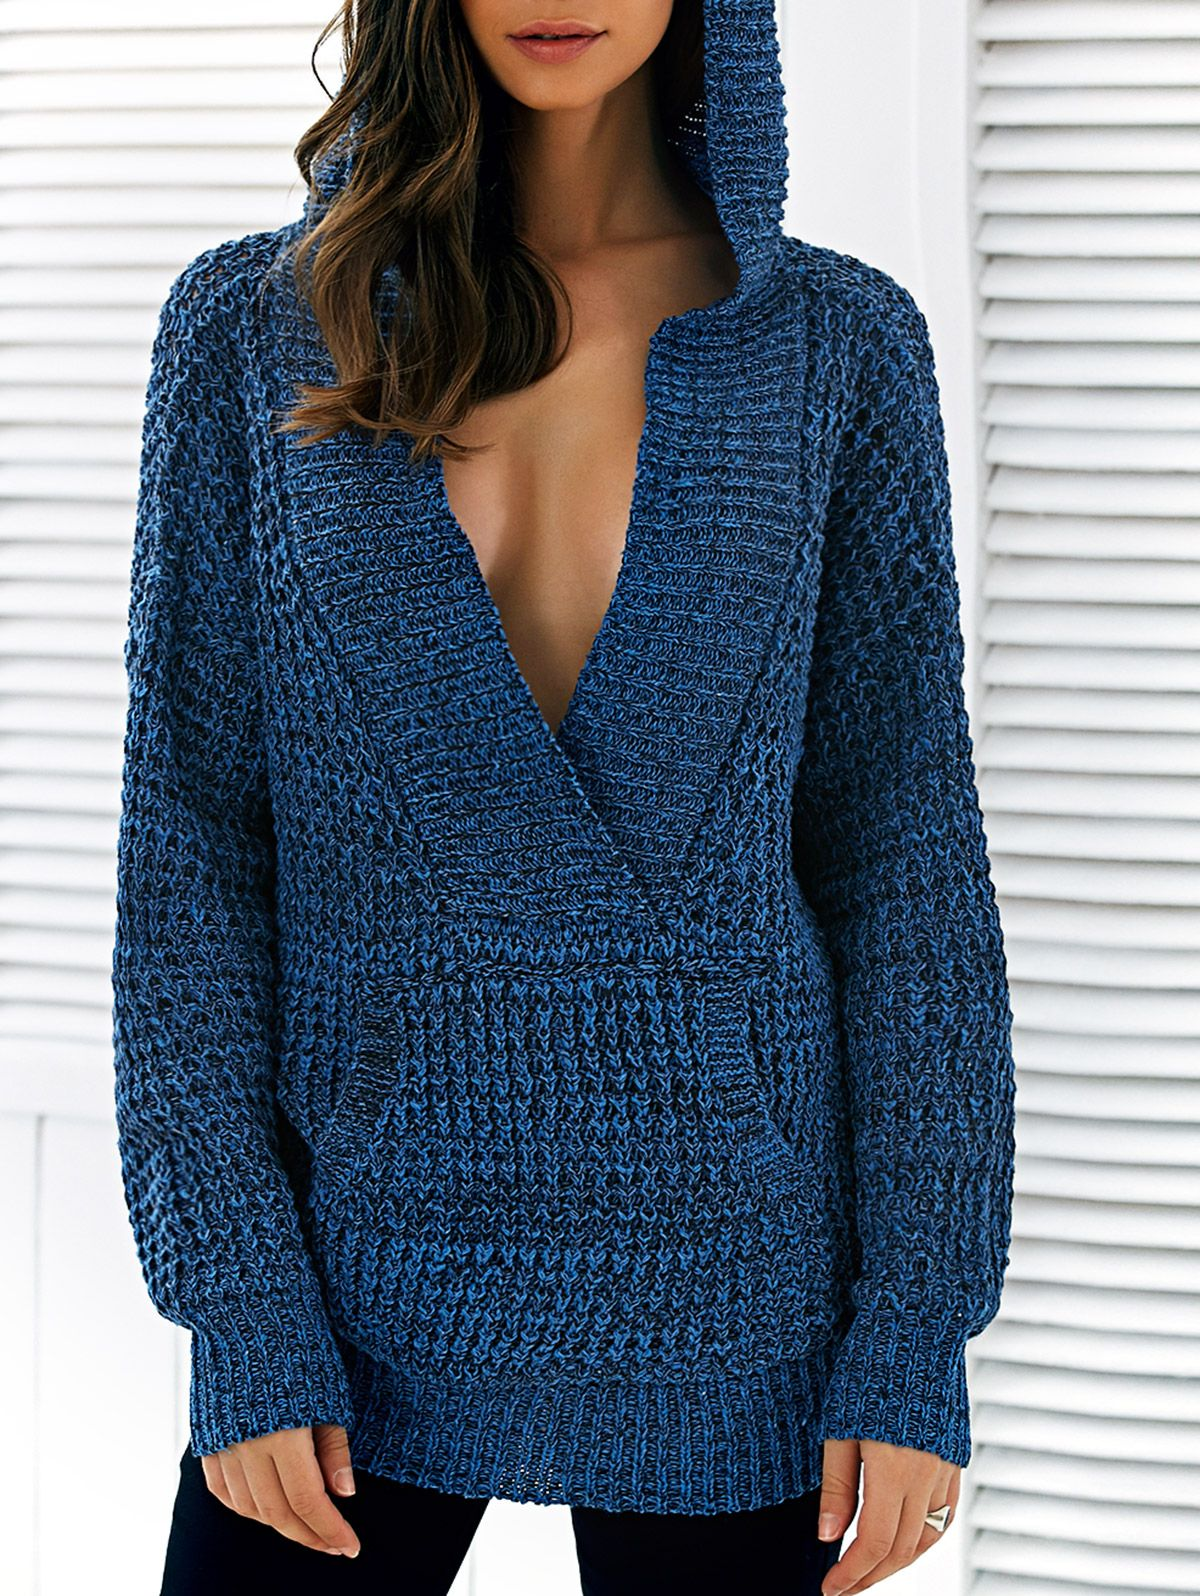 Pullover Hooded Heathered Sweater | Pullover, Crochet and Crochet ...